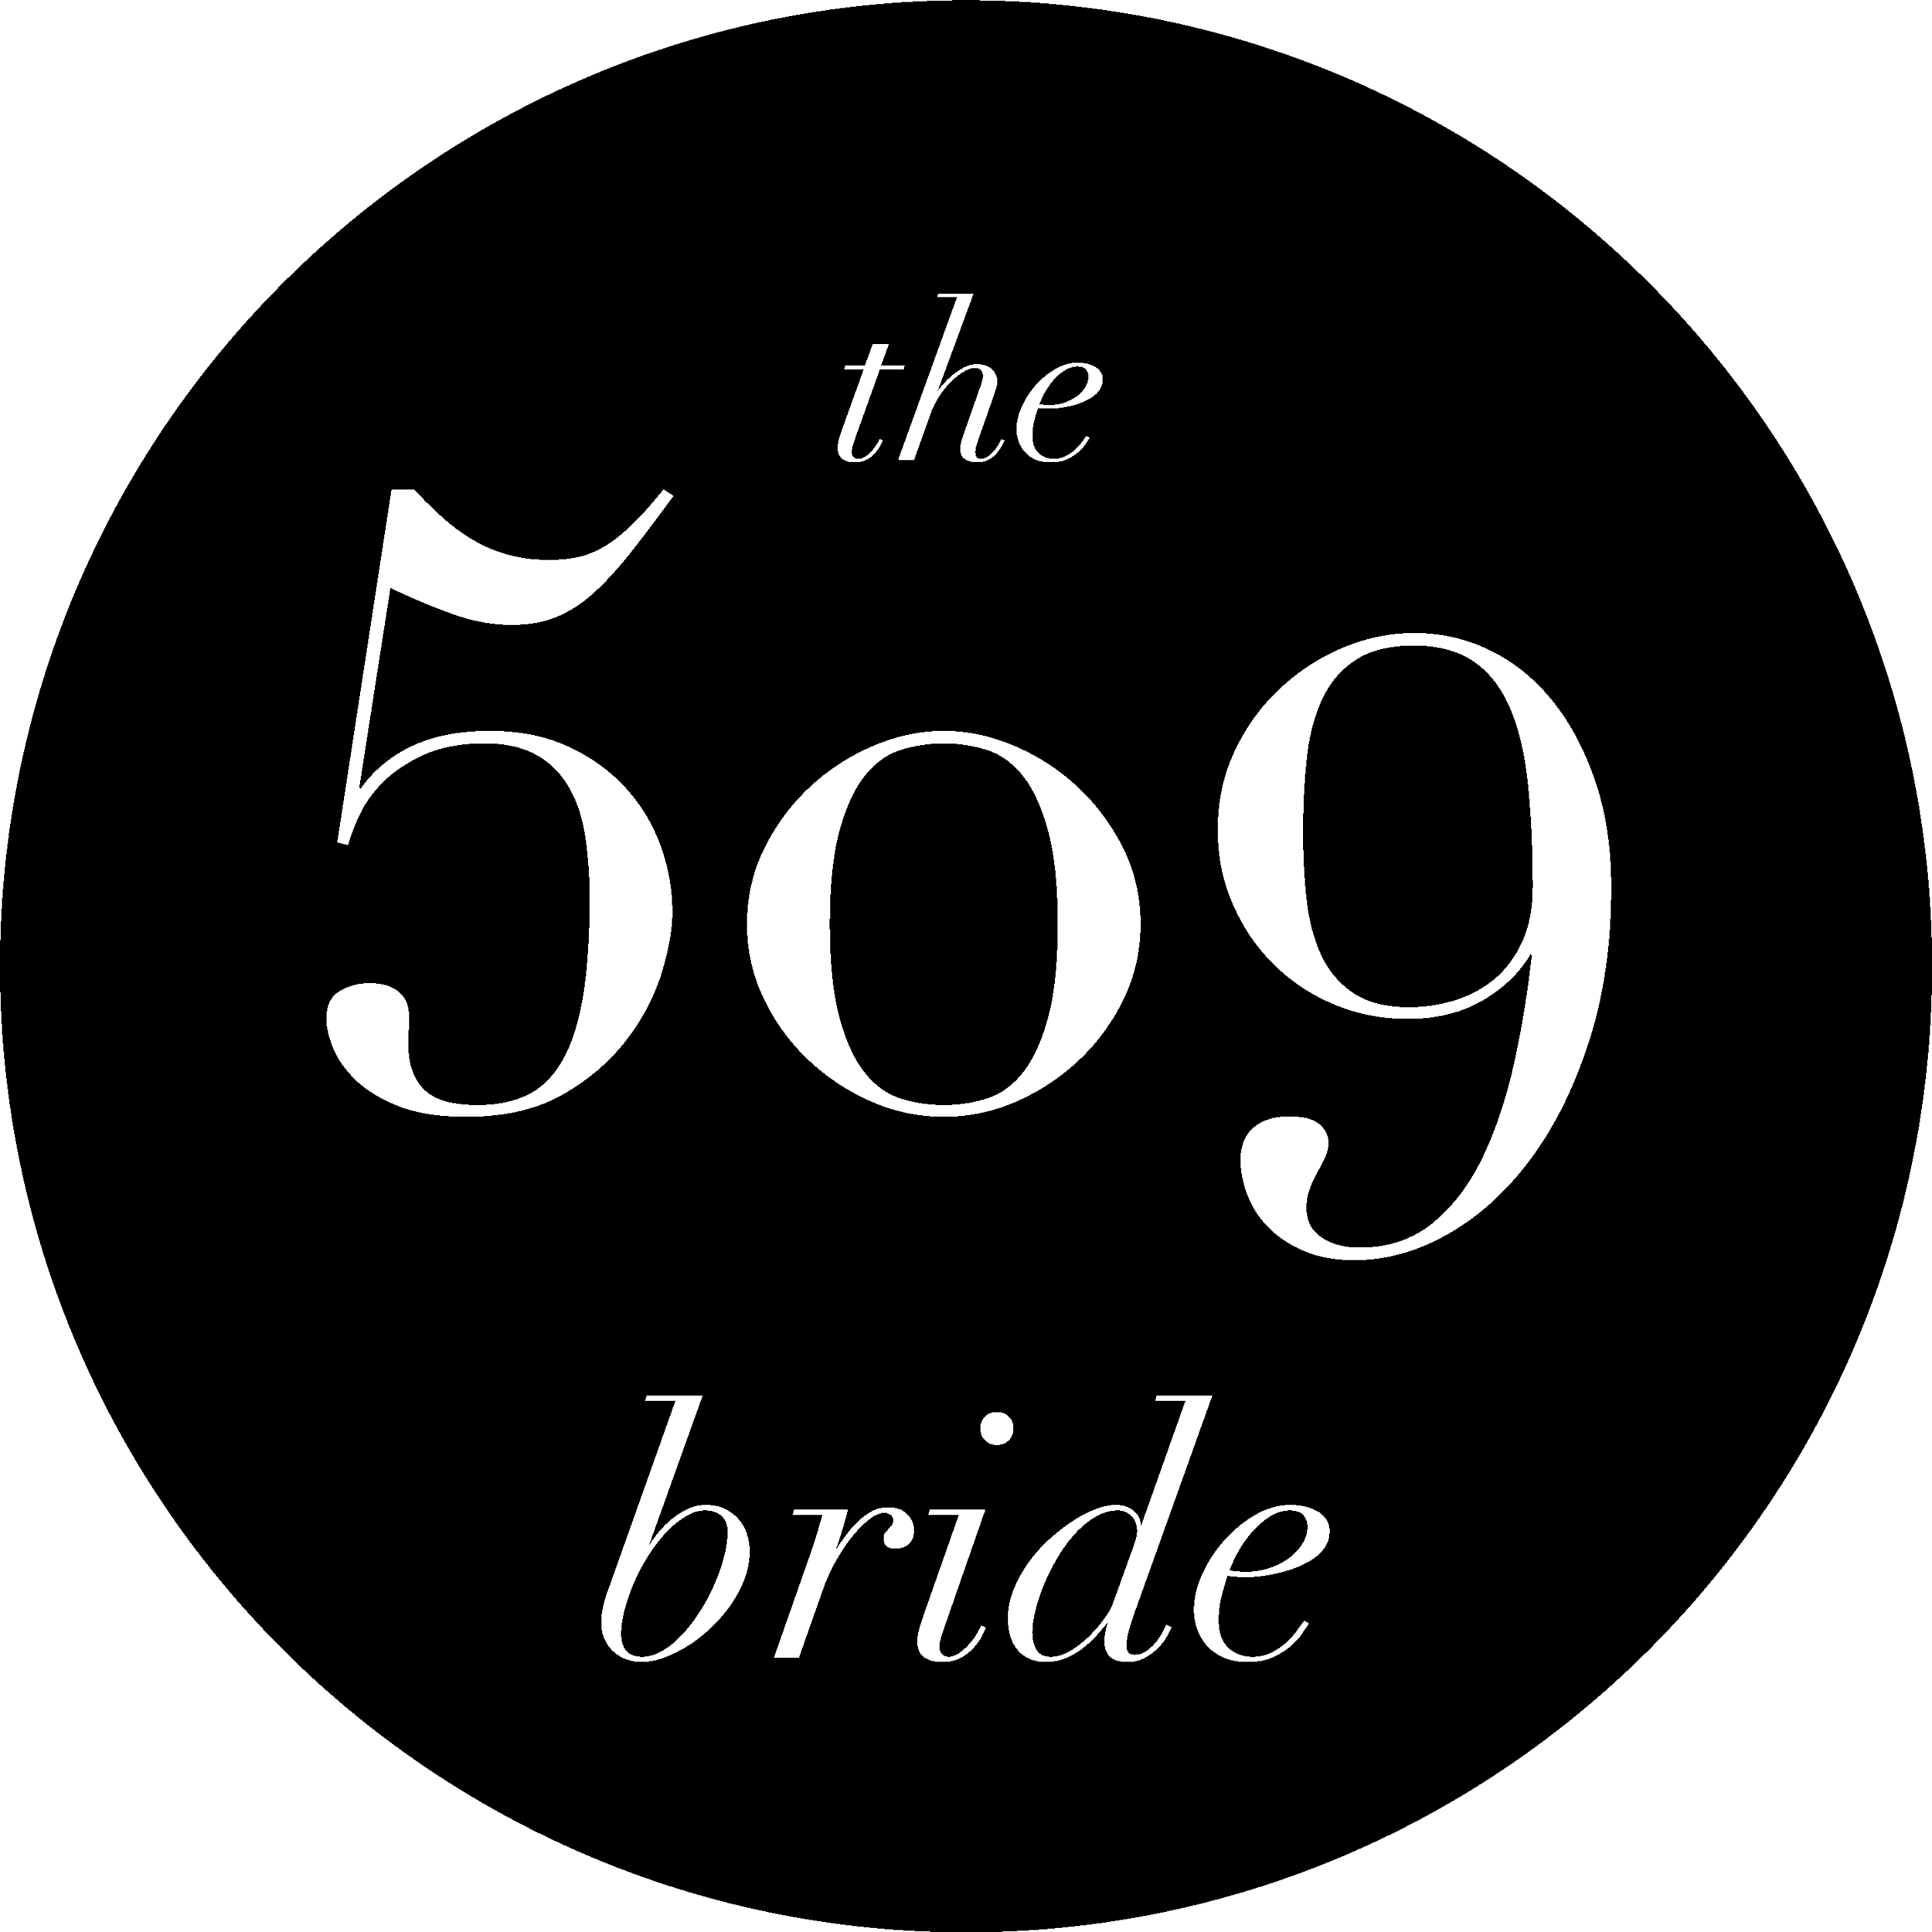 The 509 Bride_Tri Cities_tri cities wedding vendor_wedding_South East Washington_wedding vendor_wedding planning_509_best tri cities wedding vendors_Wedding vendor_509 Bride logo_The 509 Bride logo_logo_logo design